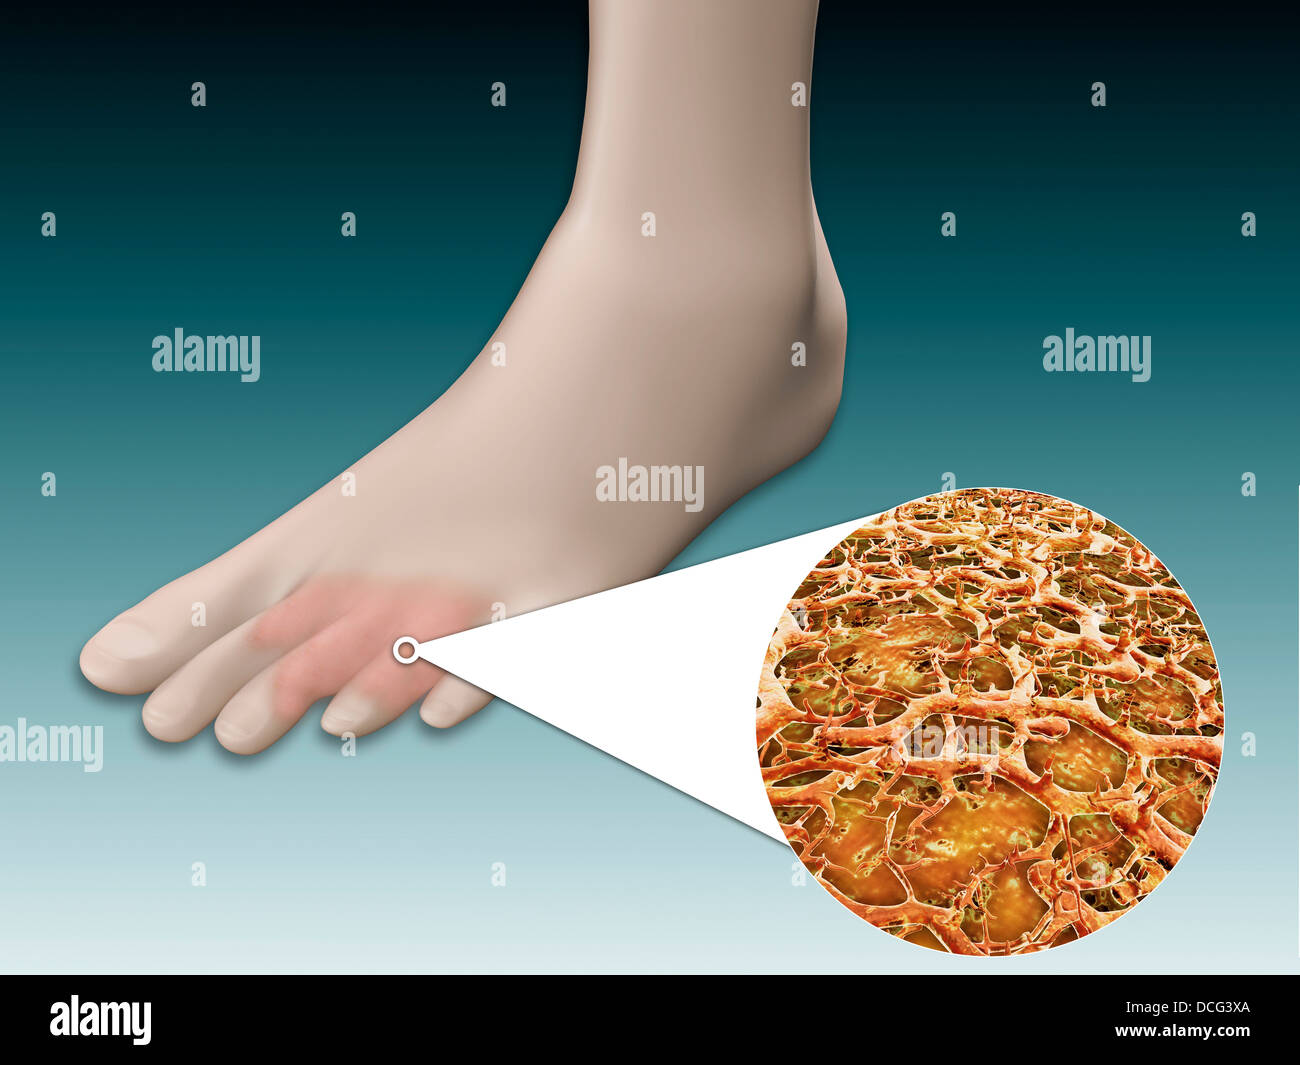 Anatomy Of Foot Fungus With Microscopic Close Up Stock Photo